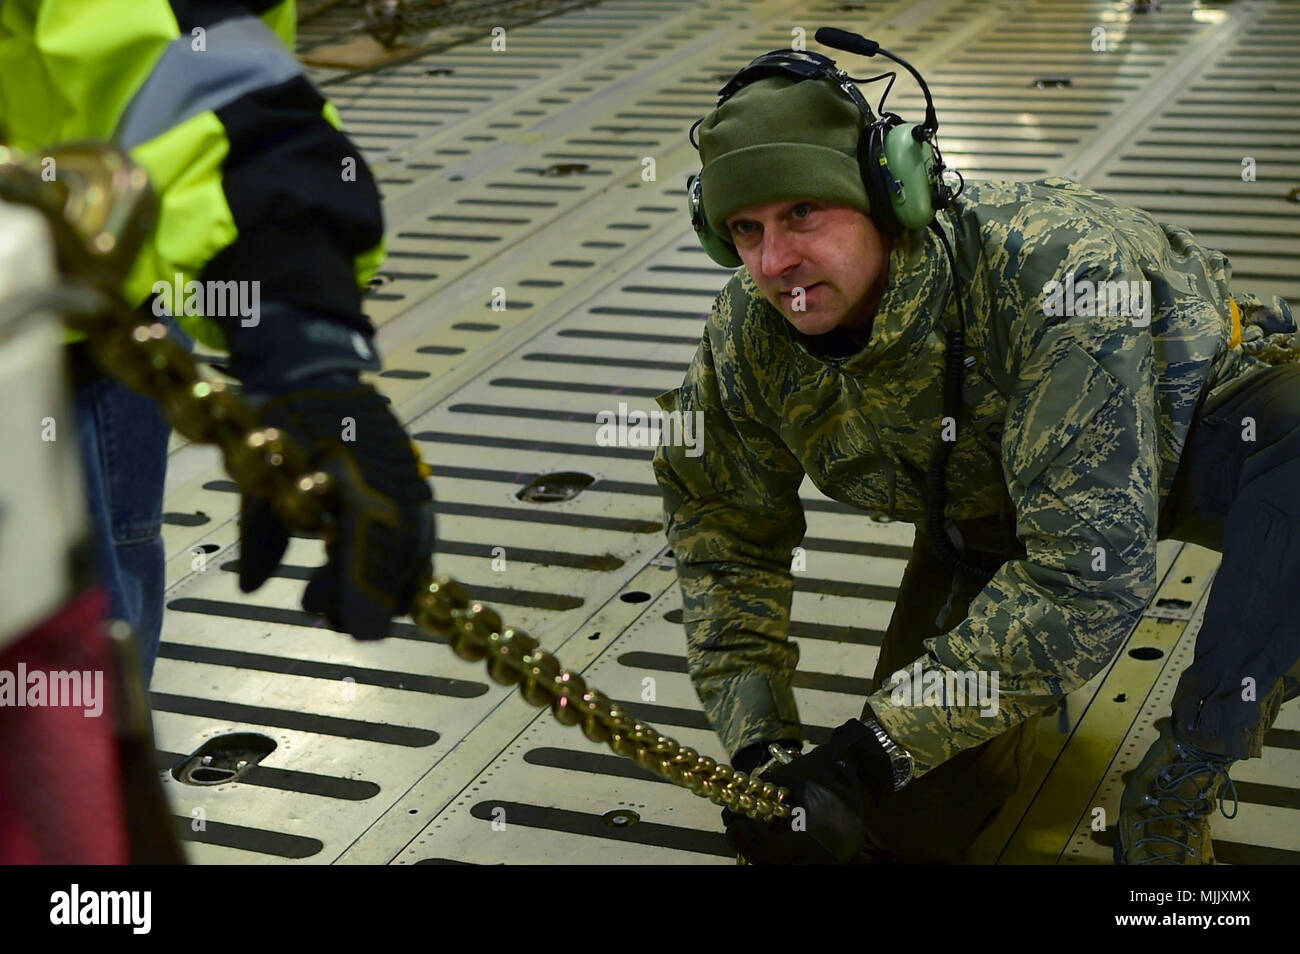 Master Sgt. Jeff Gilbert, 337th Airlift Squadron loadmaster, tightens down a chain connecting the Geostationary Operational Environmental Satellite – R Series to the bed of a C-5 Galaxy aircraft Dec. 4, 2017, on Buckley Air Force Base, Colorado. At more than 100 thousand pounds, it is imperative that the GOES-R Series is correctly fastened to the transport aircraft to ensure safe arrival to Cape Canaveral, Florida. (U.S. Air Force photo by Senior Airman Luke W. Nowakowski) - Stock Image